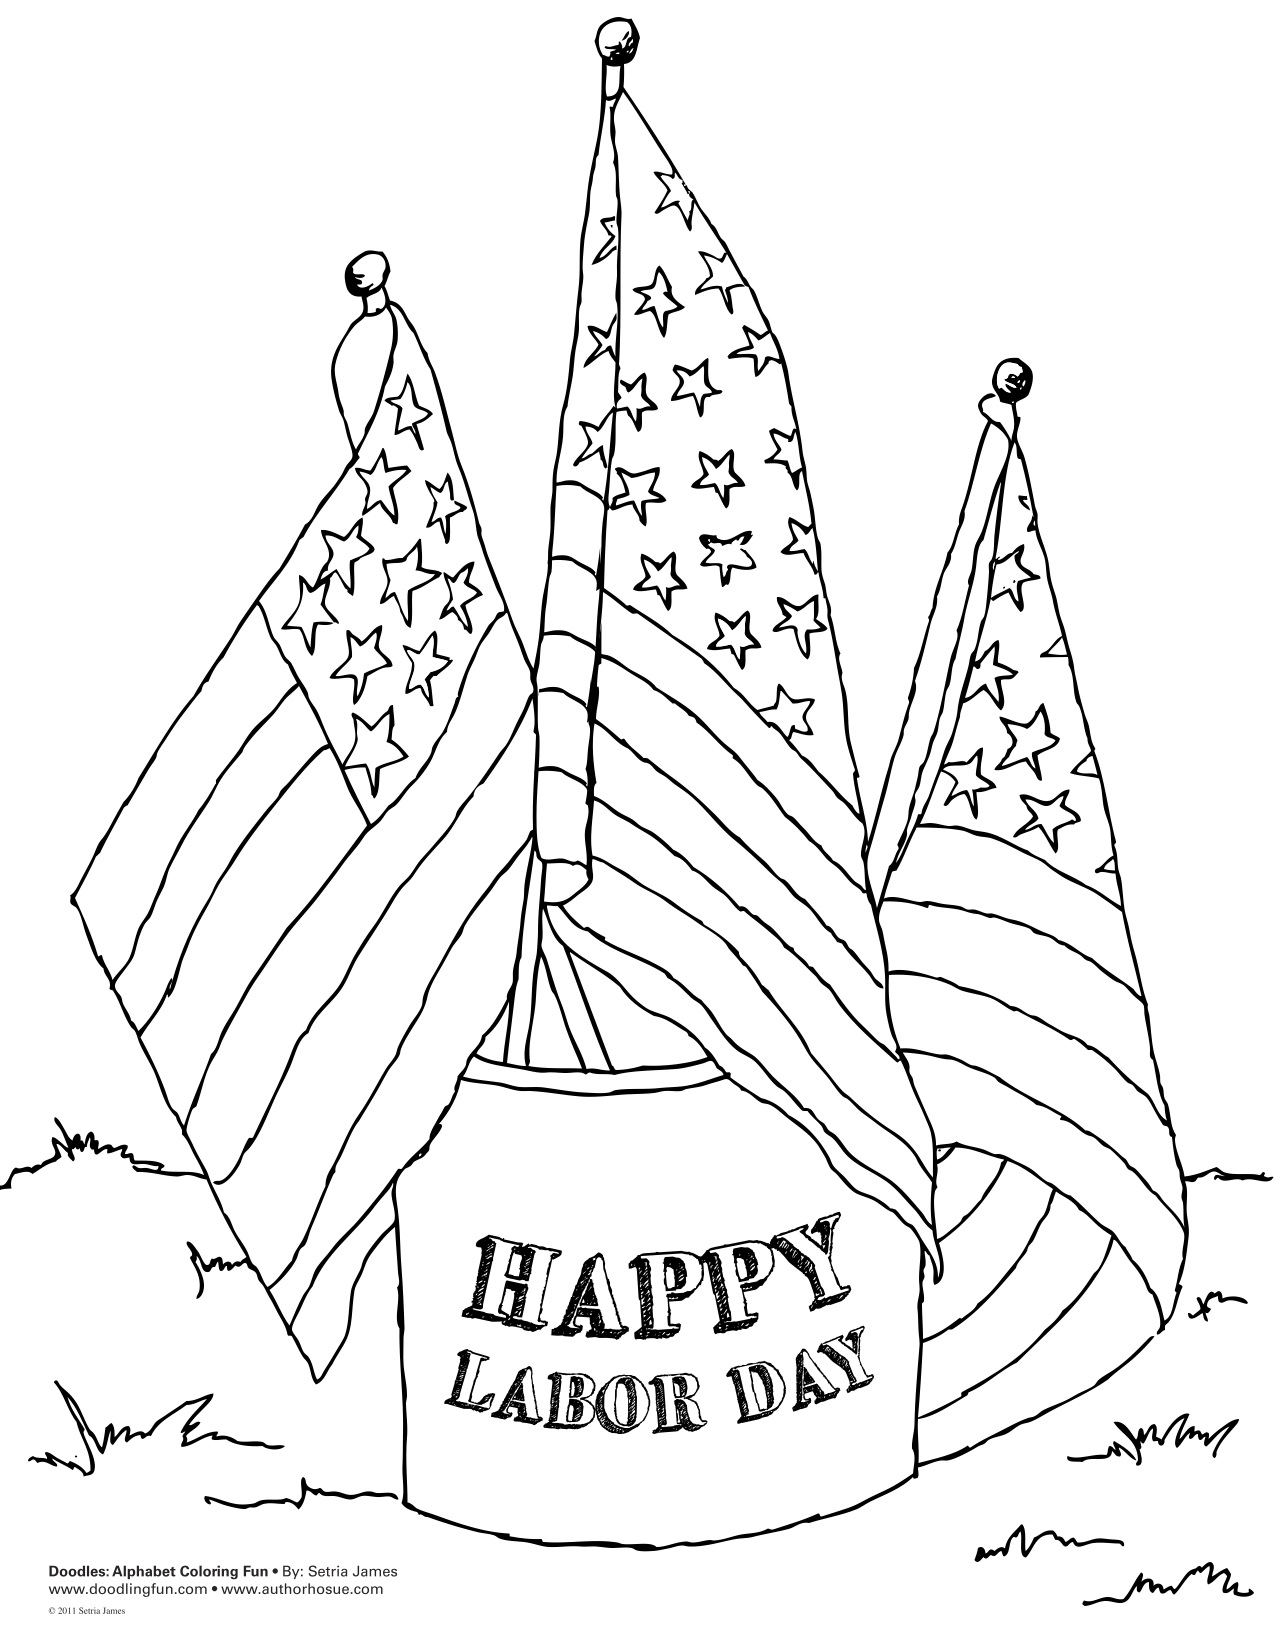 7 Best Images of Happy Labor Day Printable - Labor Day Free Printables,  Labor Day Coloring Pages for Kids and Happy Labor Day / printablee.com